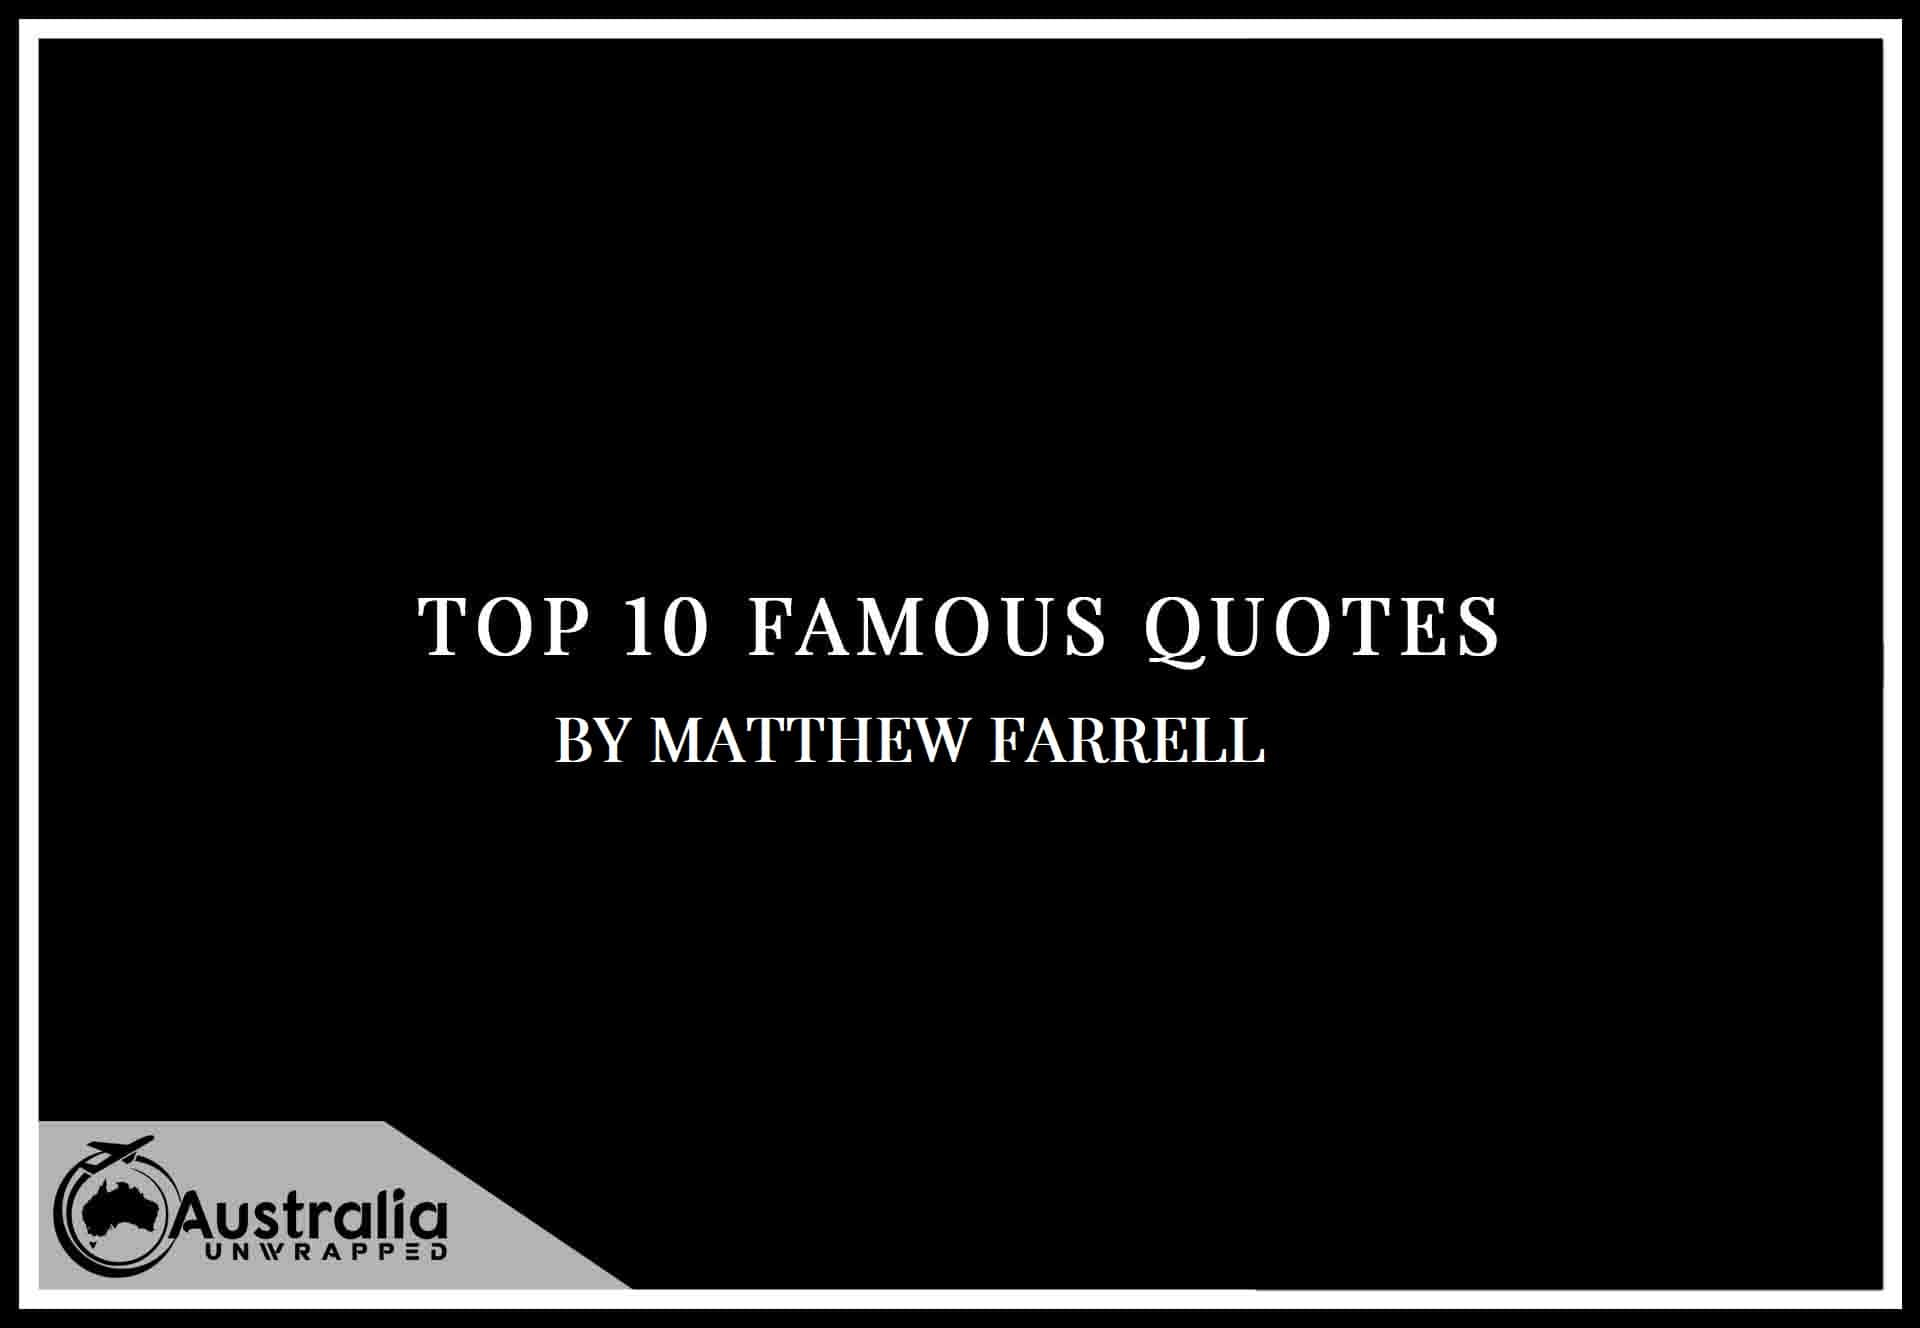 Top 10 Famous Quotes by Author Matthew Farrell